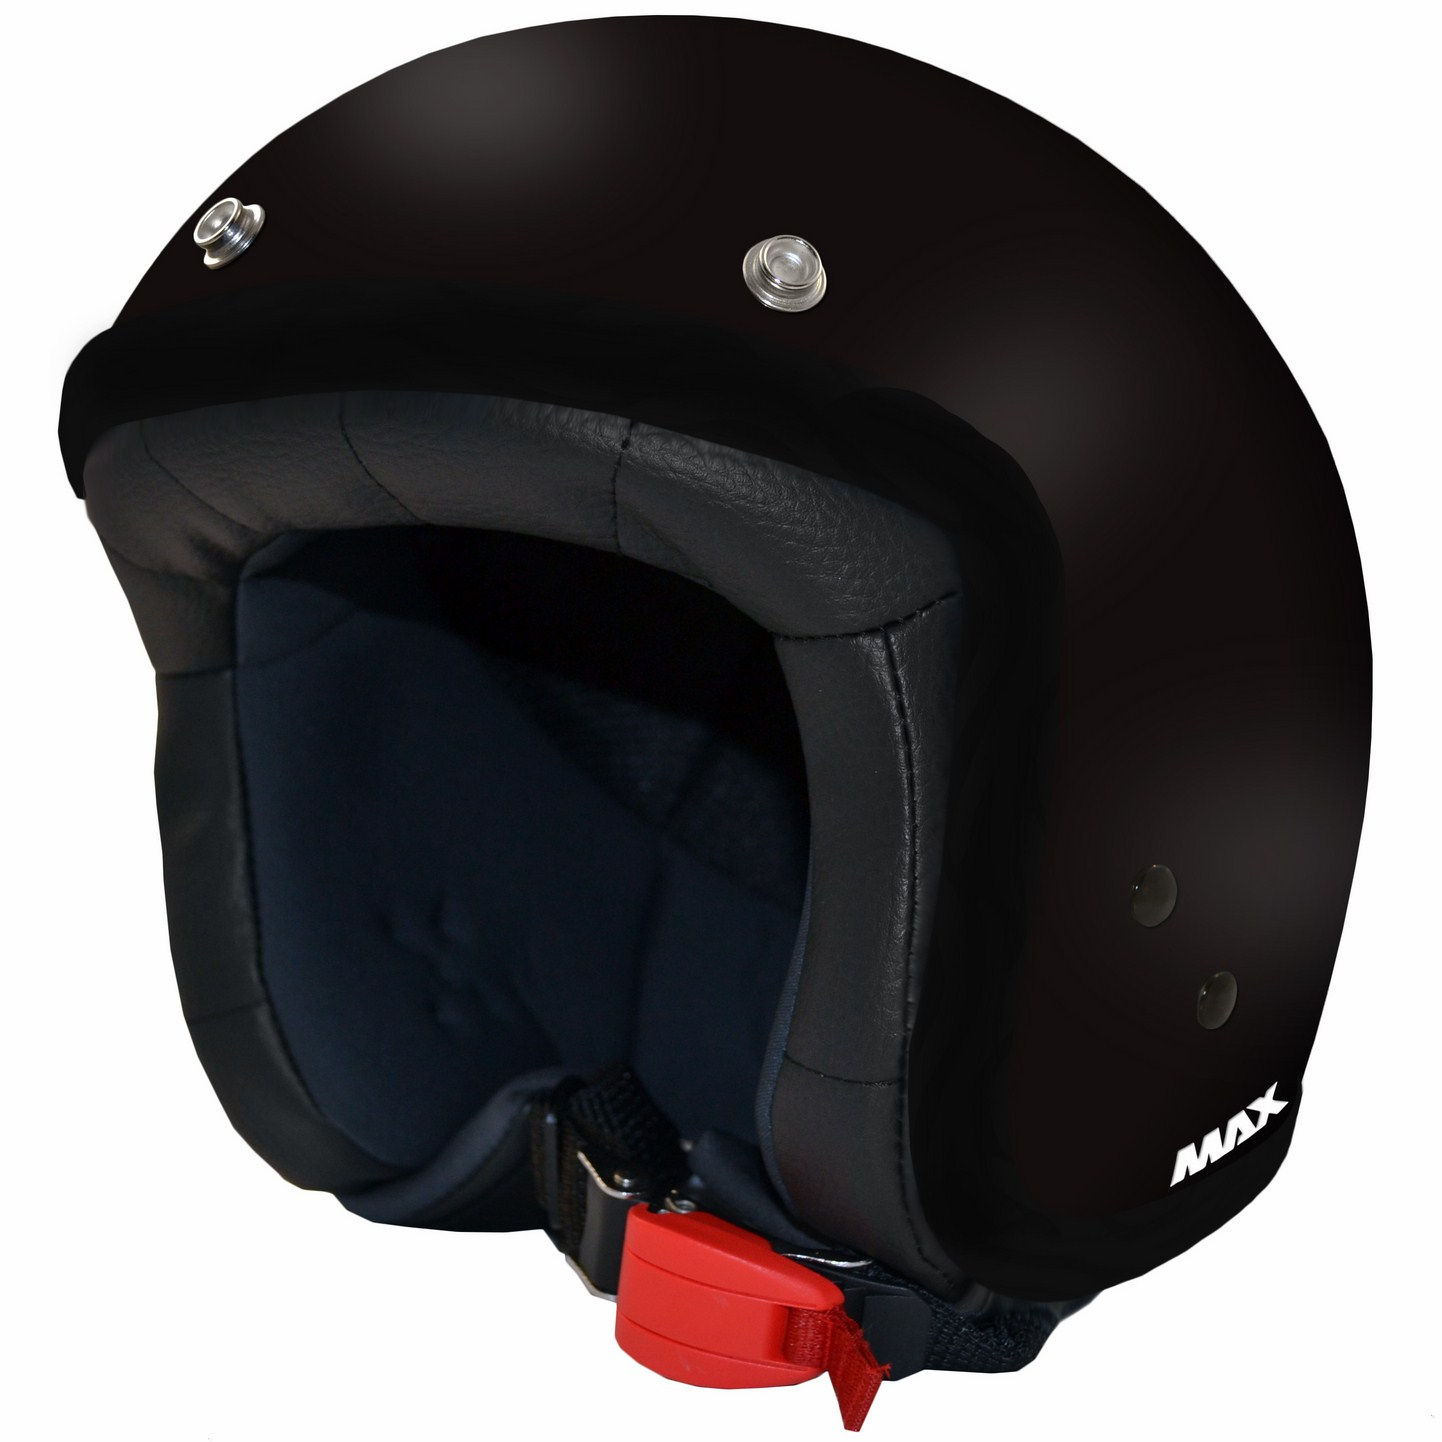 Casco jet Max Flag Black Cromo Nero